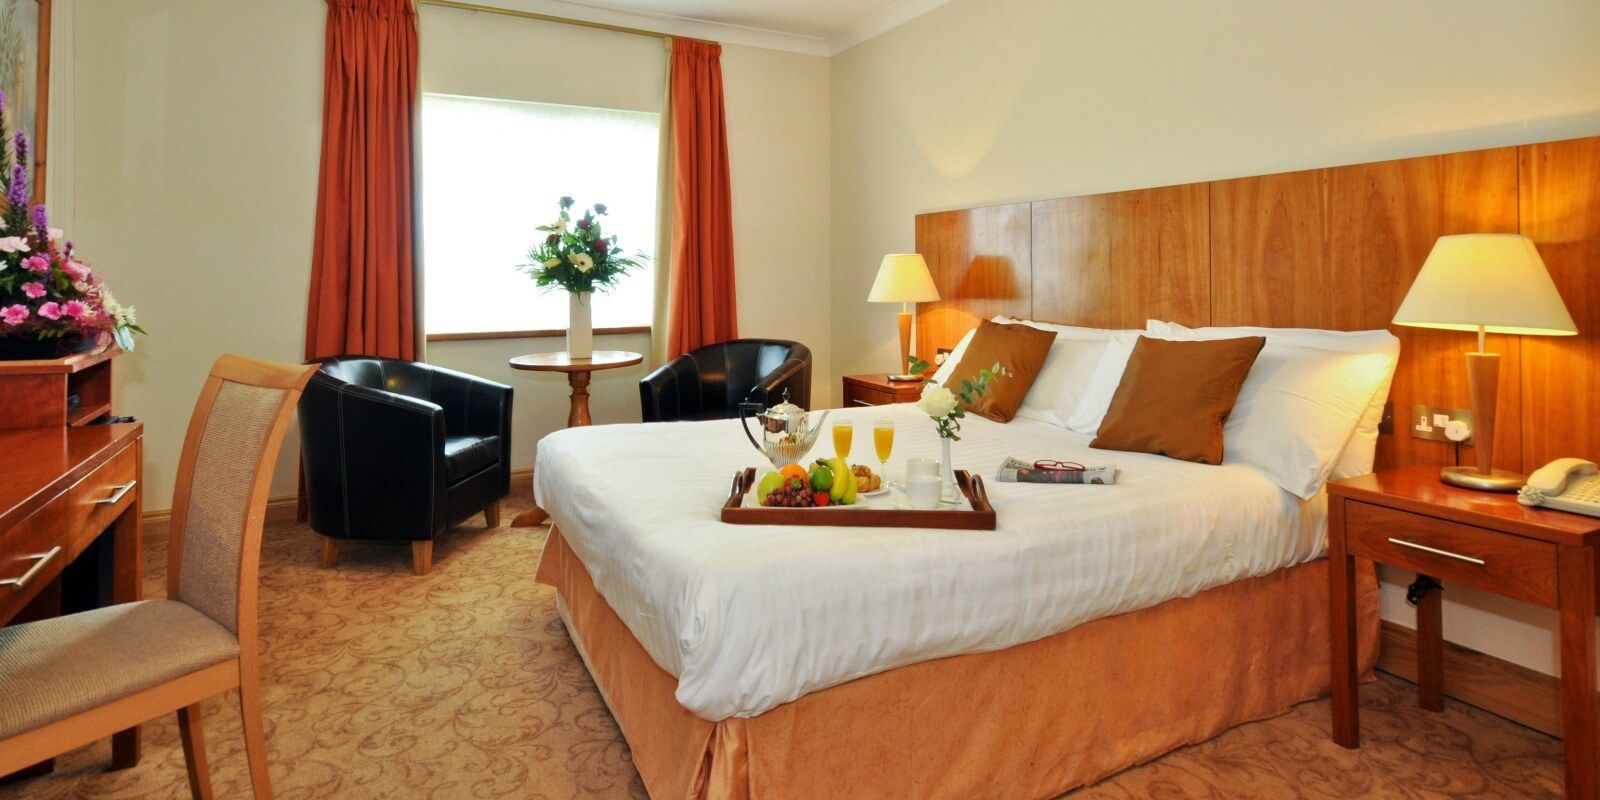 Double Room, Broadhaven Bay Hotel